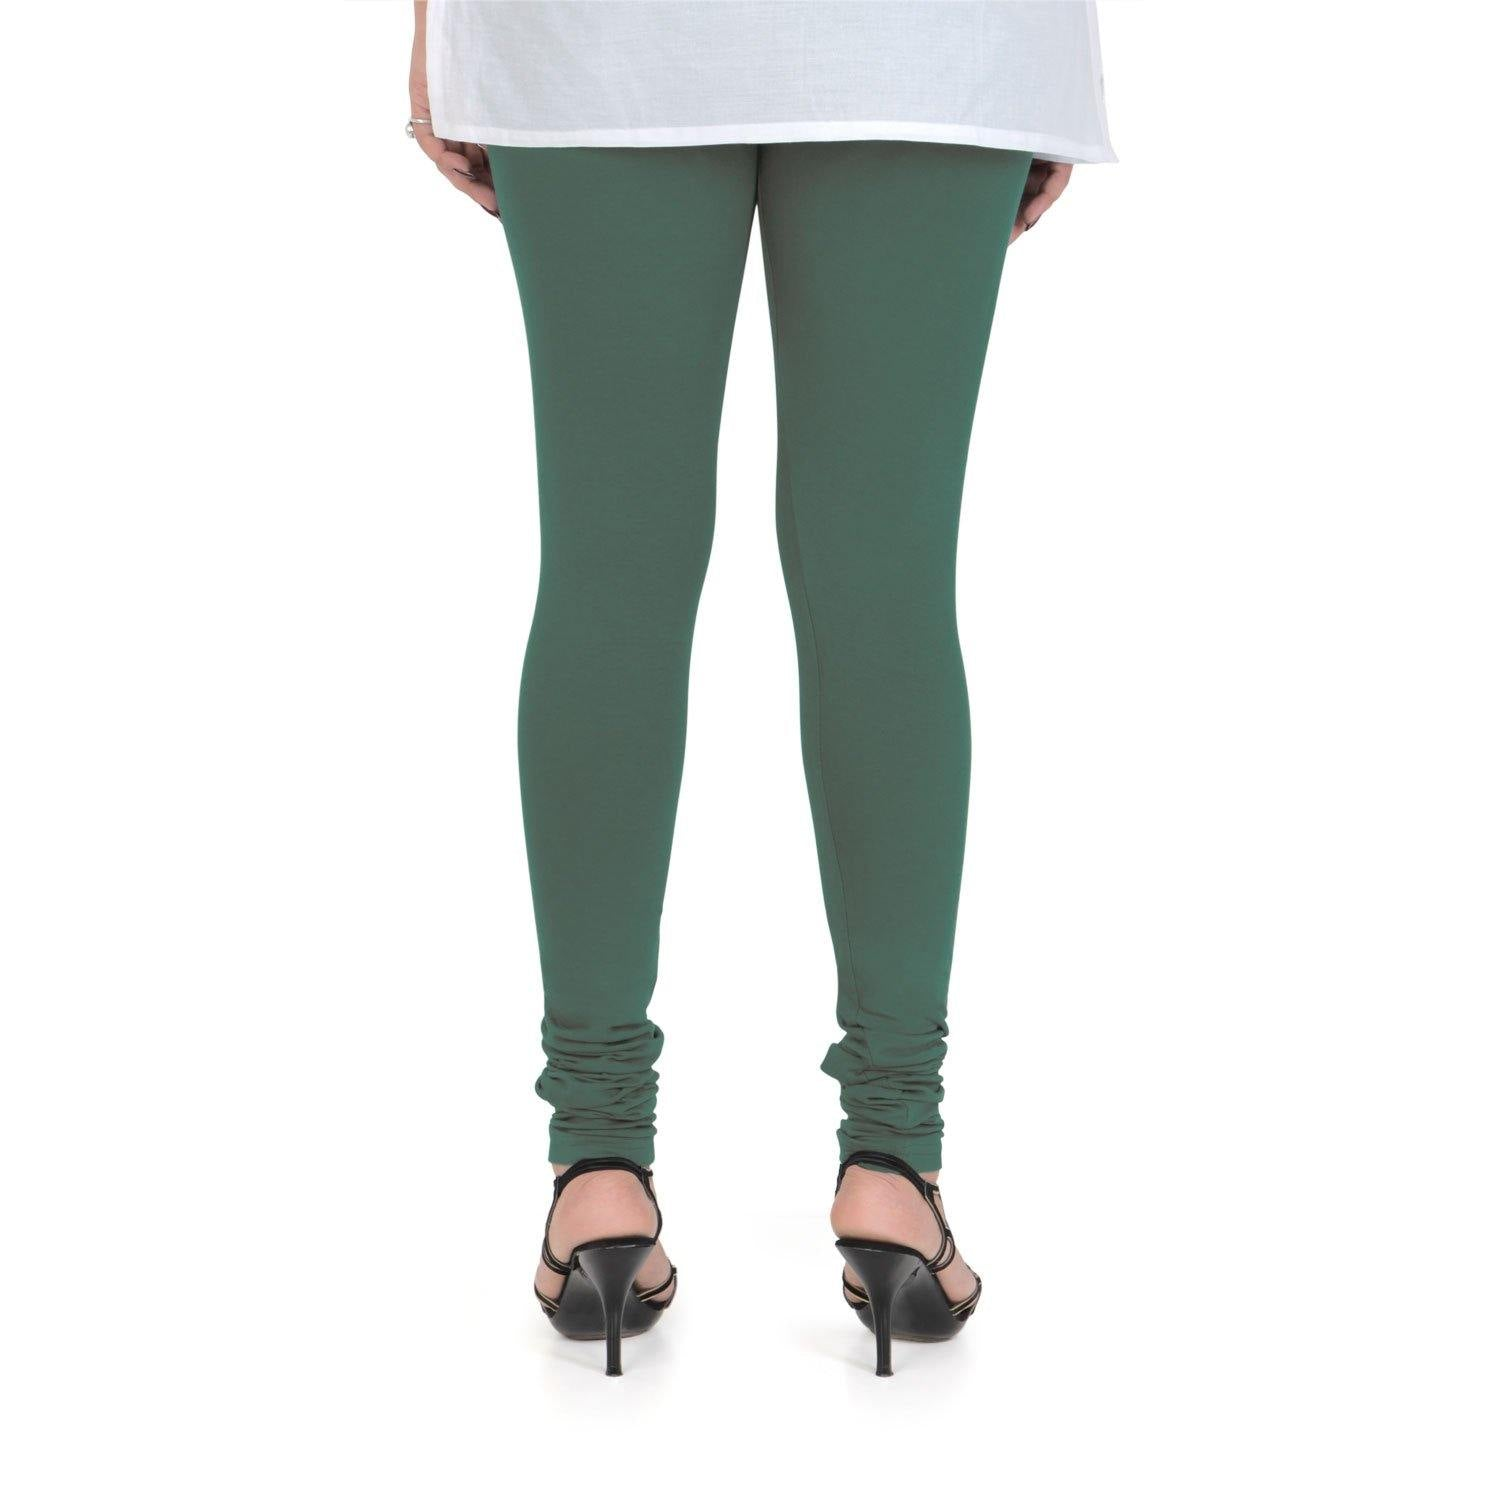 Vami Women's Cotton Stretchable Churidar Legging - Forest Green